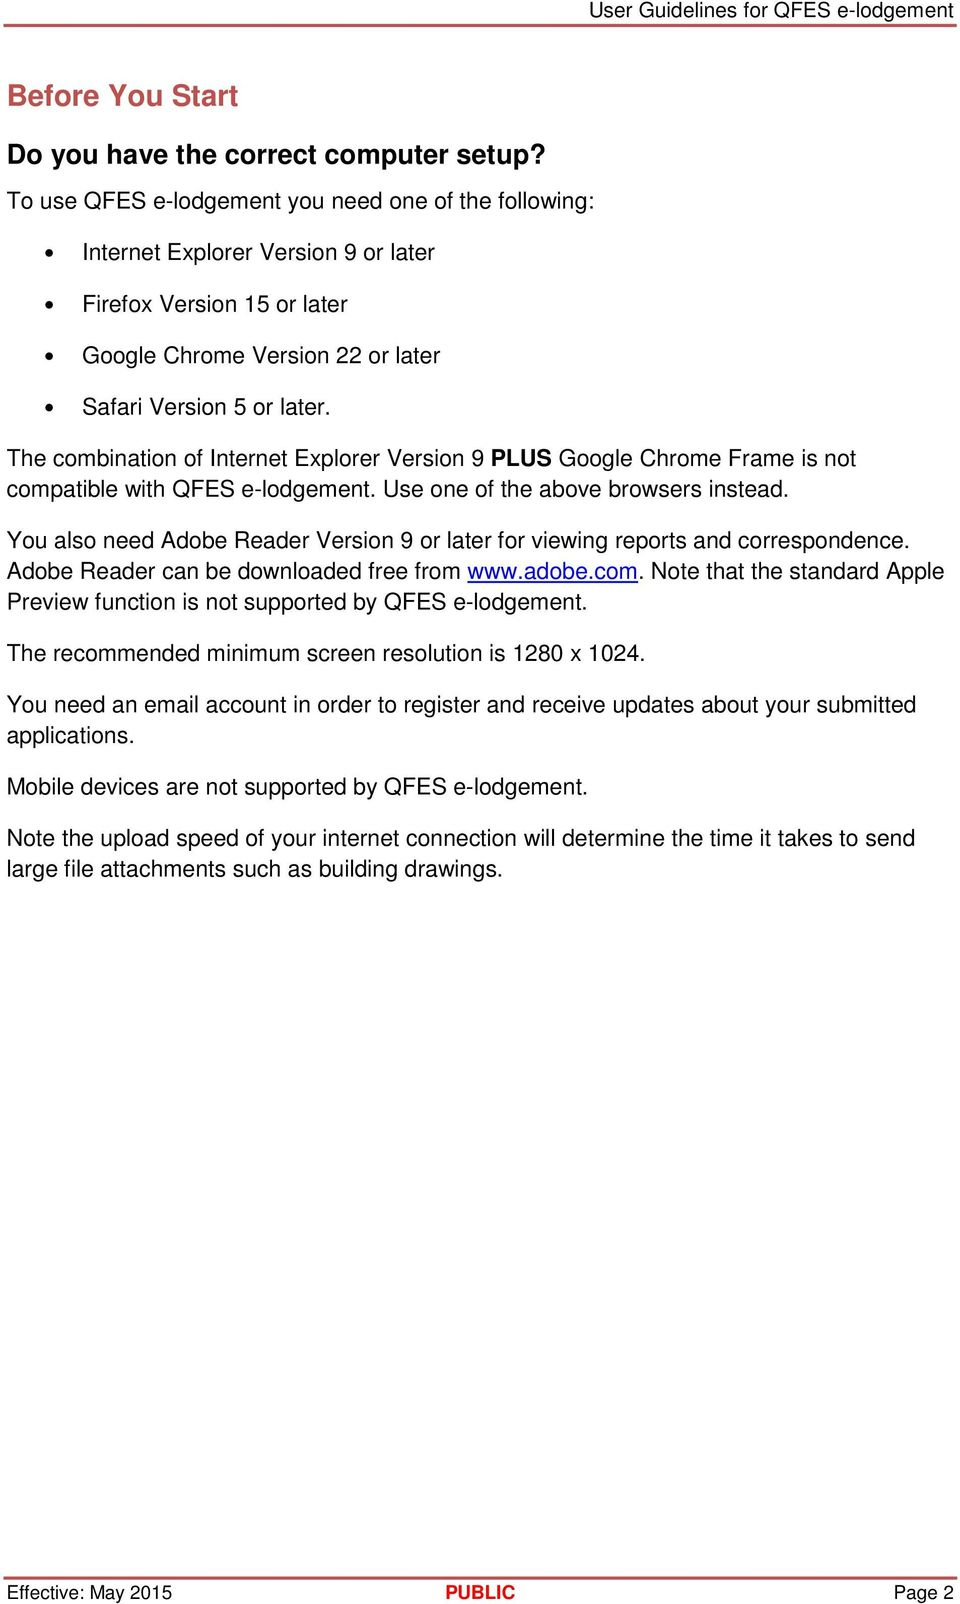 The combination of Internet Explorer Version 9 PLUS Google Chrome Frame is not compatible with QFES e-lodgement. Use one of the above browsers instead.